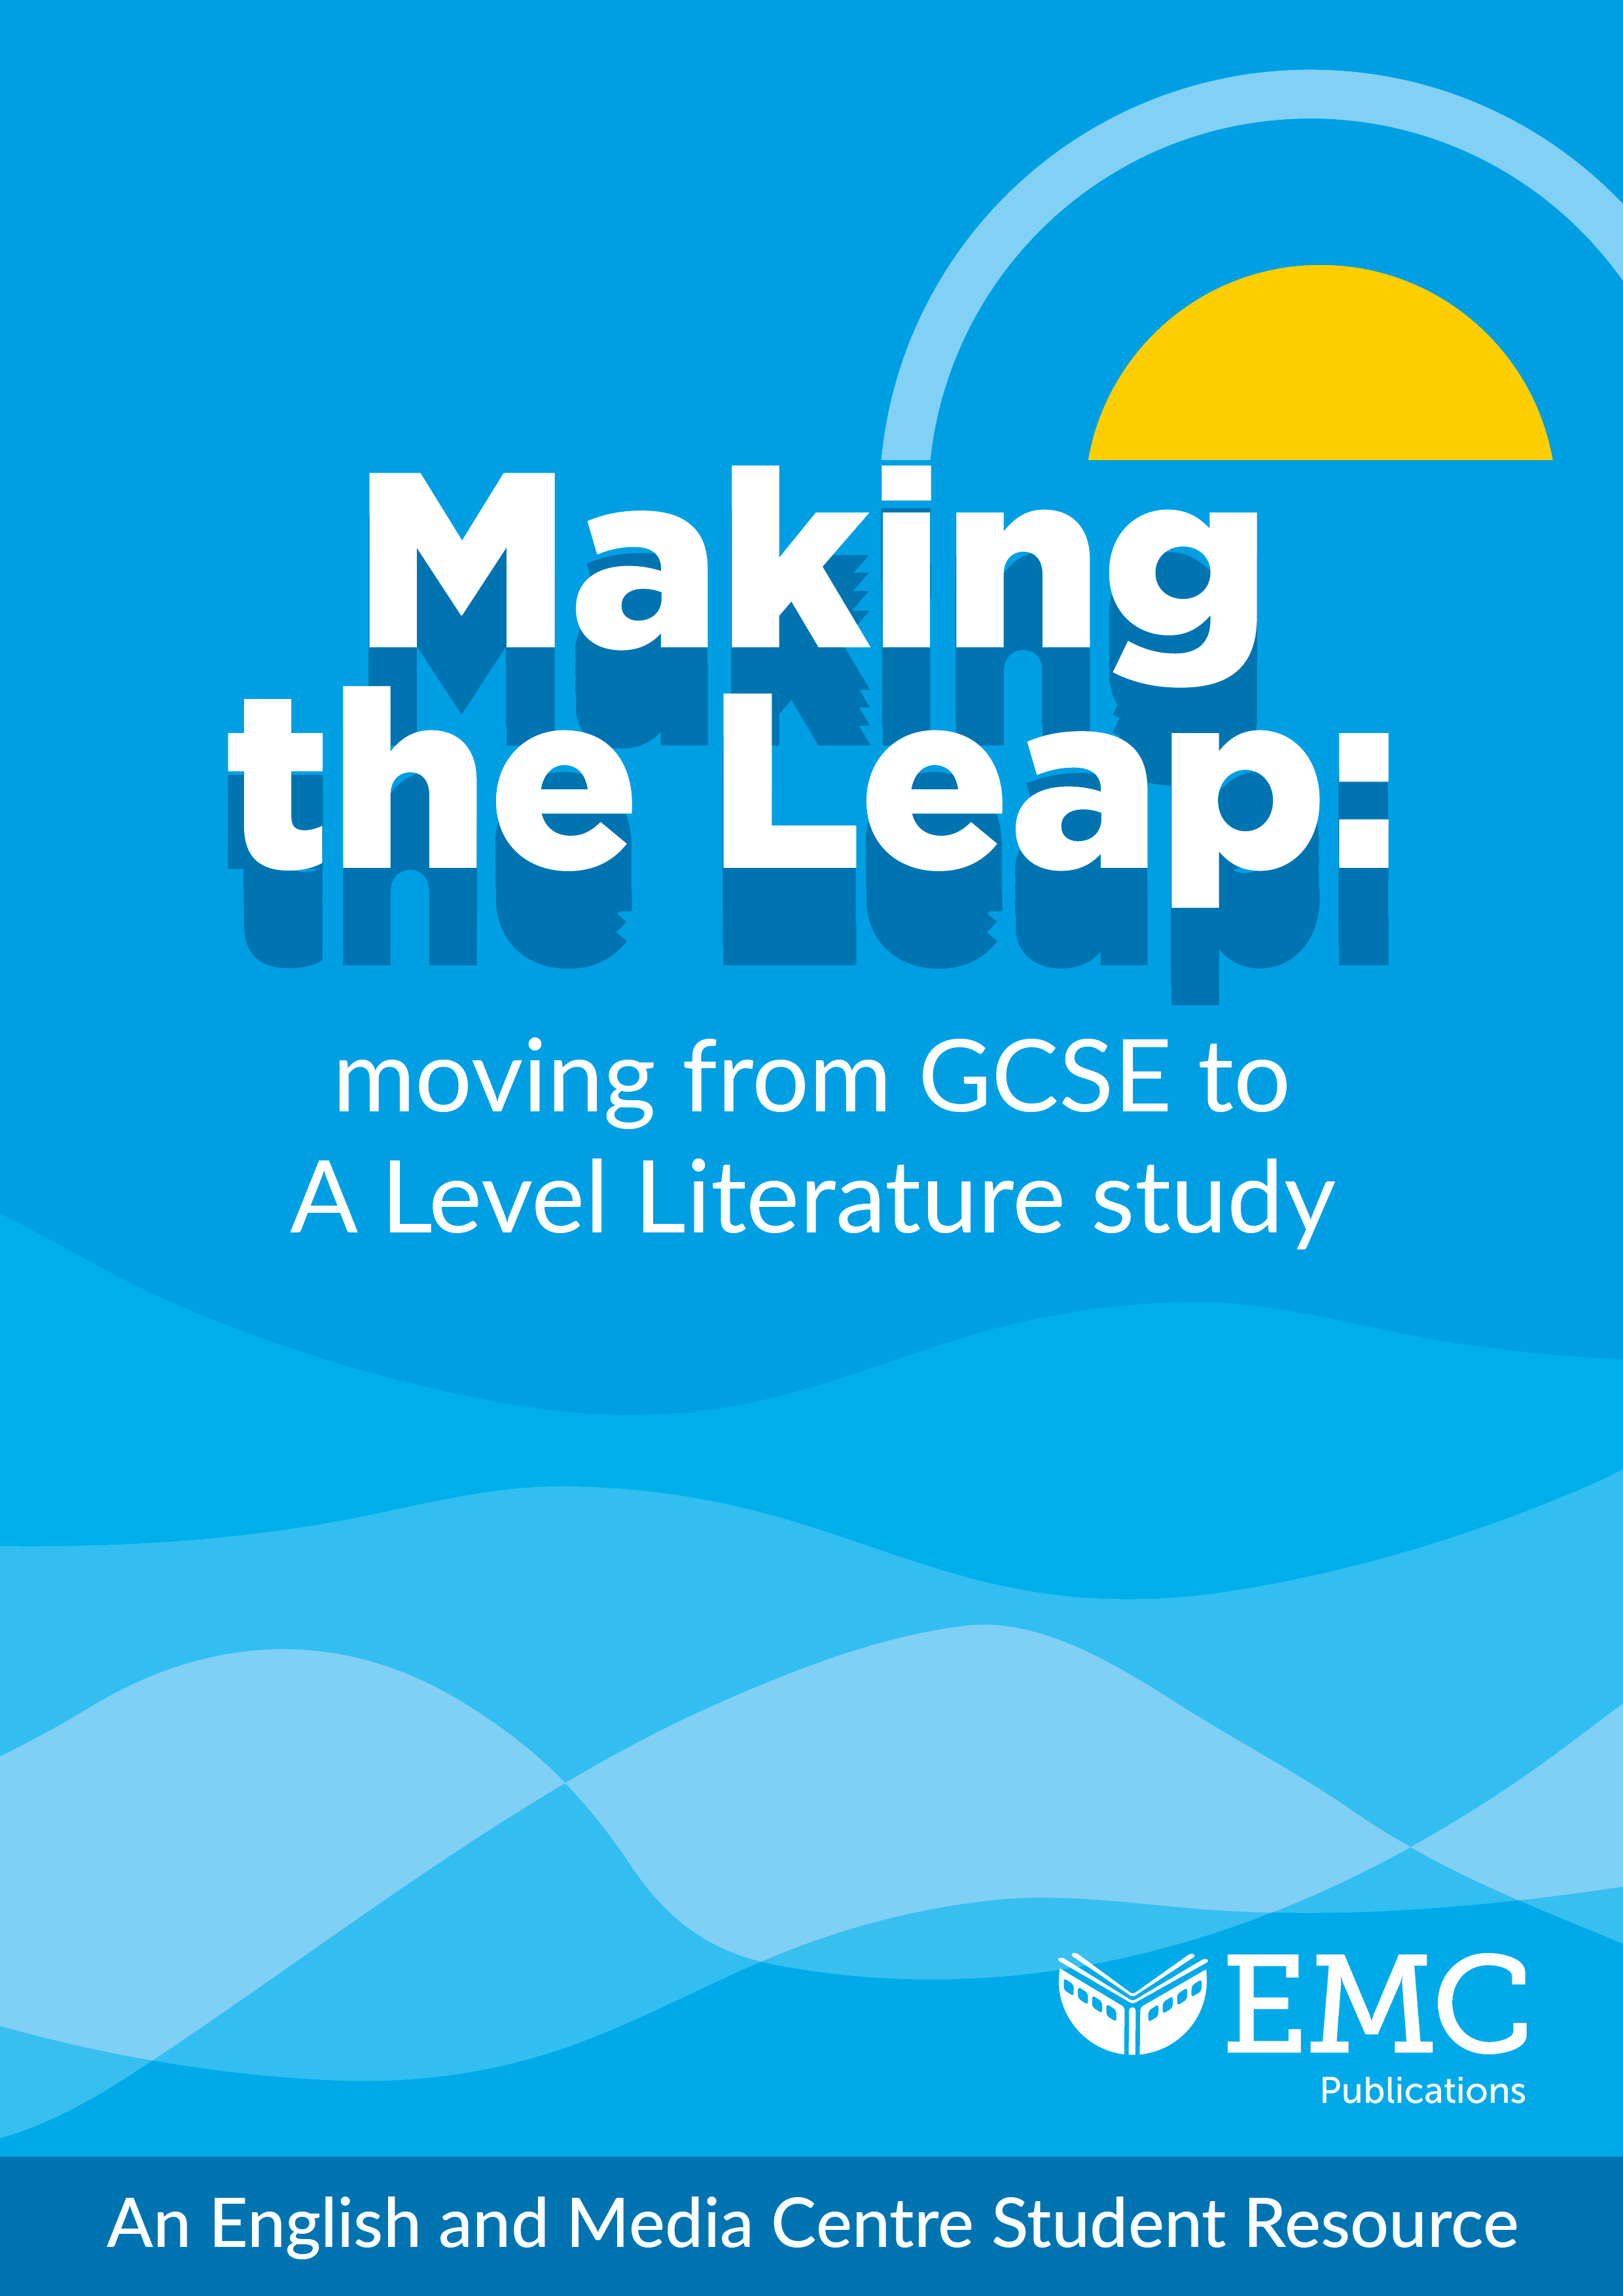 Cover image for 00-Making the Leap: From GCSE to A Level Literature Study [EMC_Free]